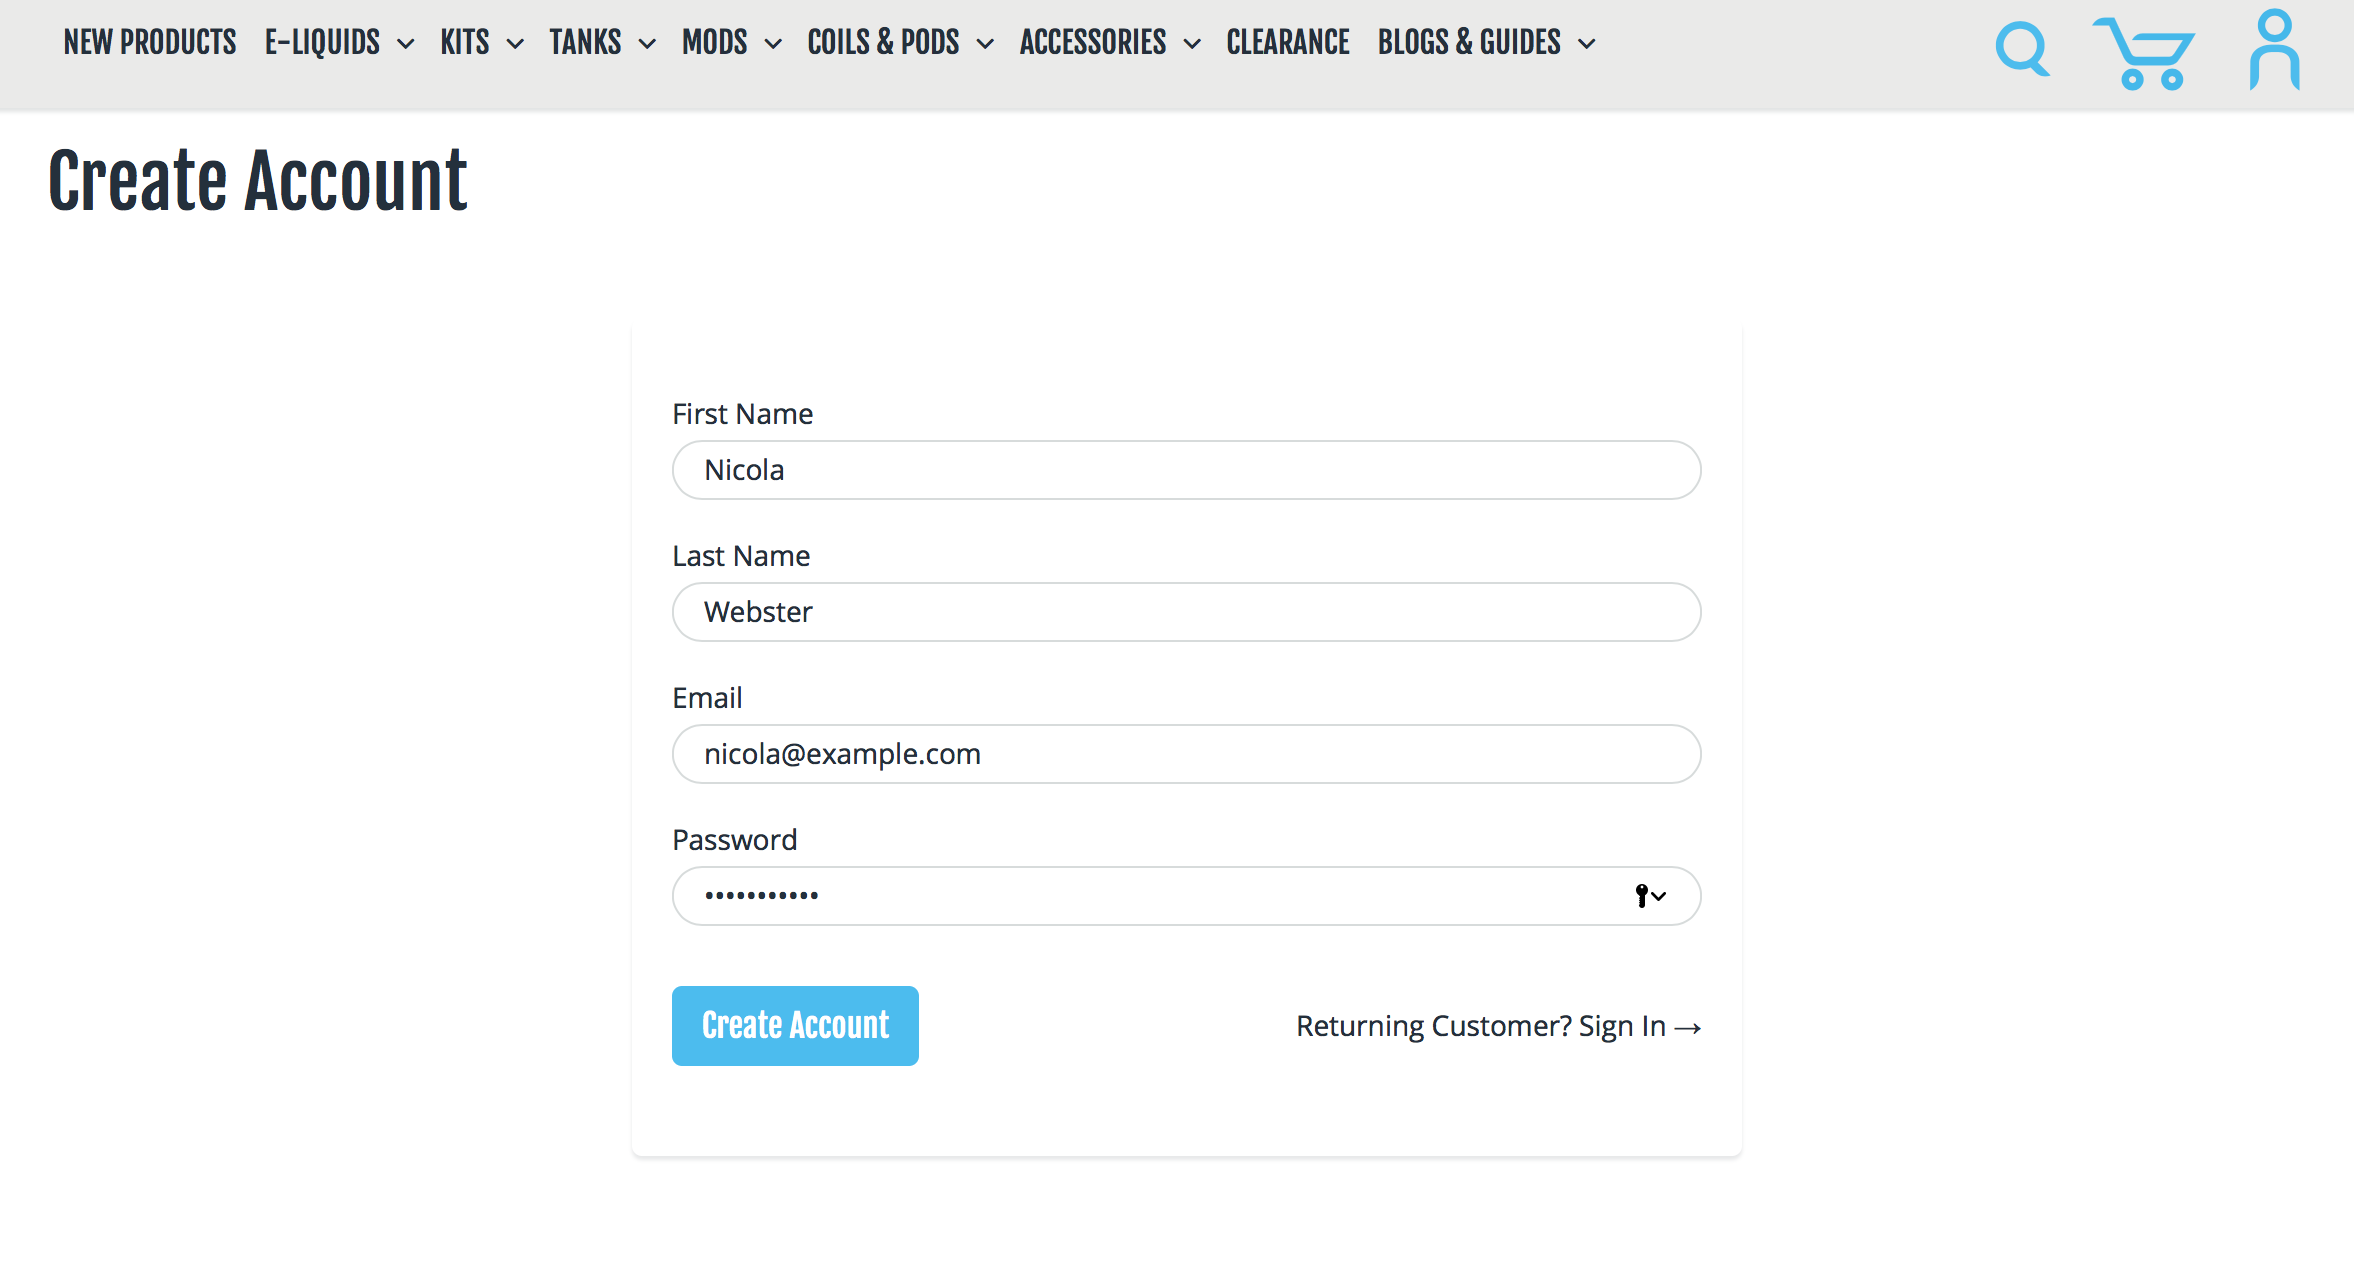 Fill your details into the form and select a password.